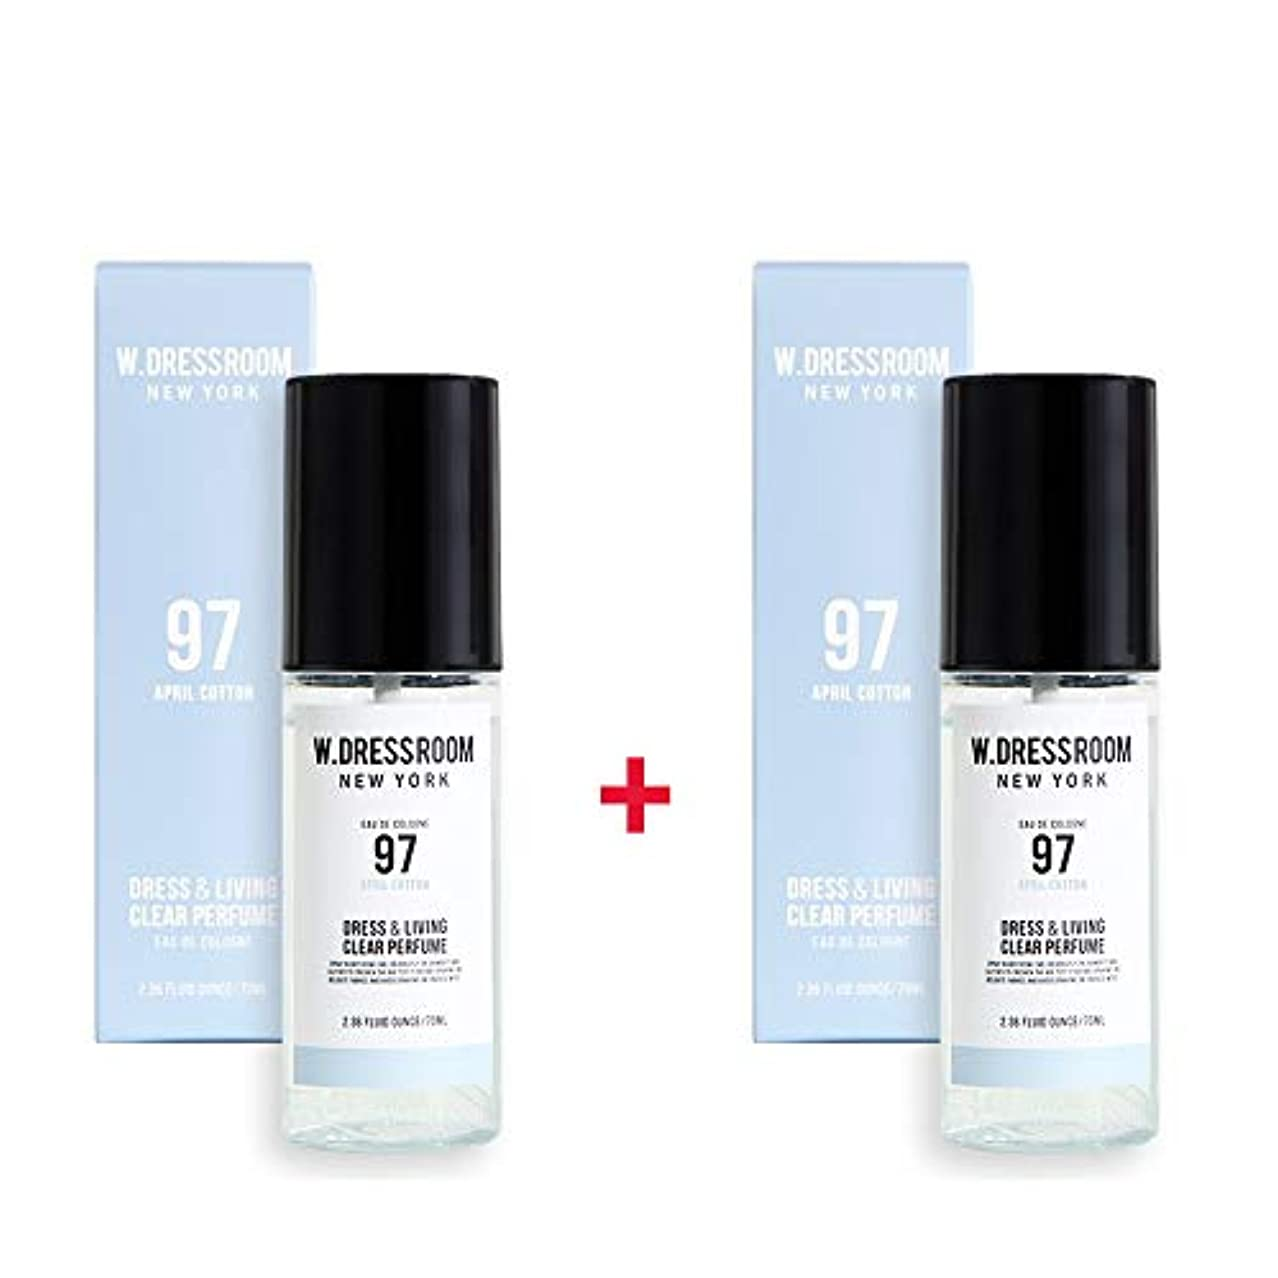 メイン解釈発音W.DRESSROOM Dress & Living Clear Perfume 70ml (No 97 April Cotton)+(No 97 April Cotton)